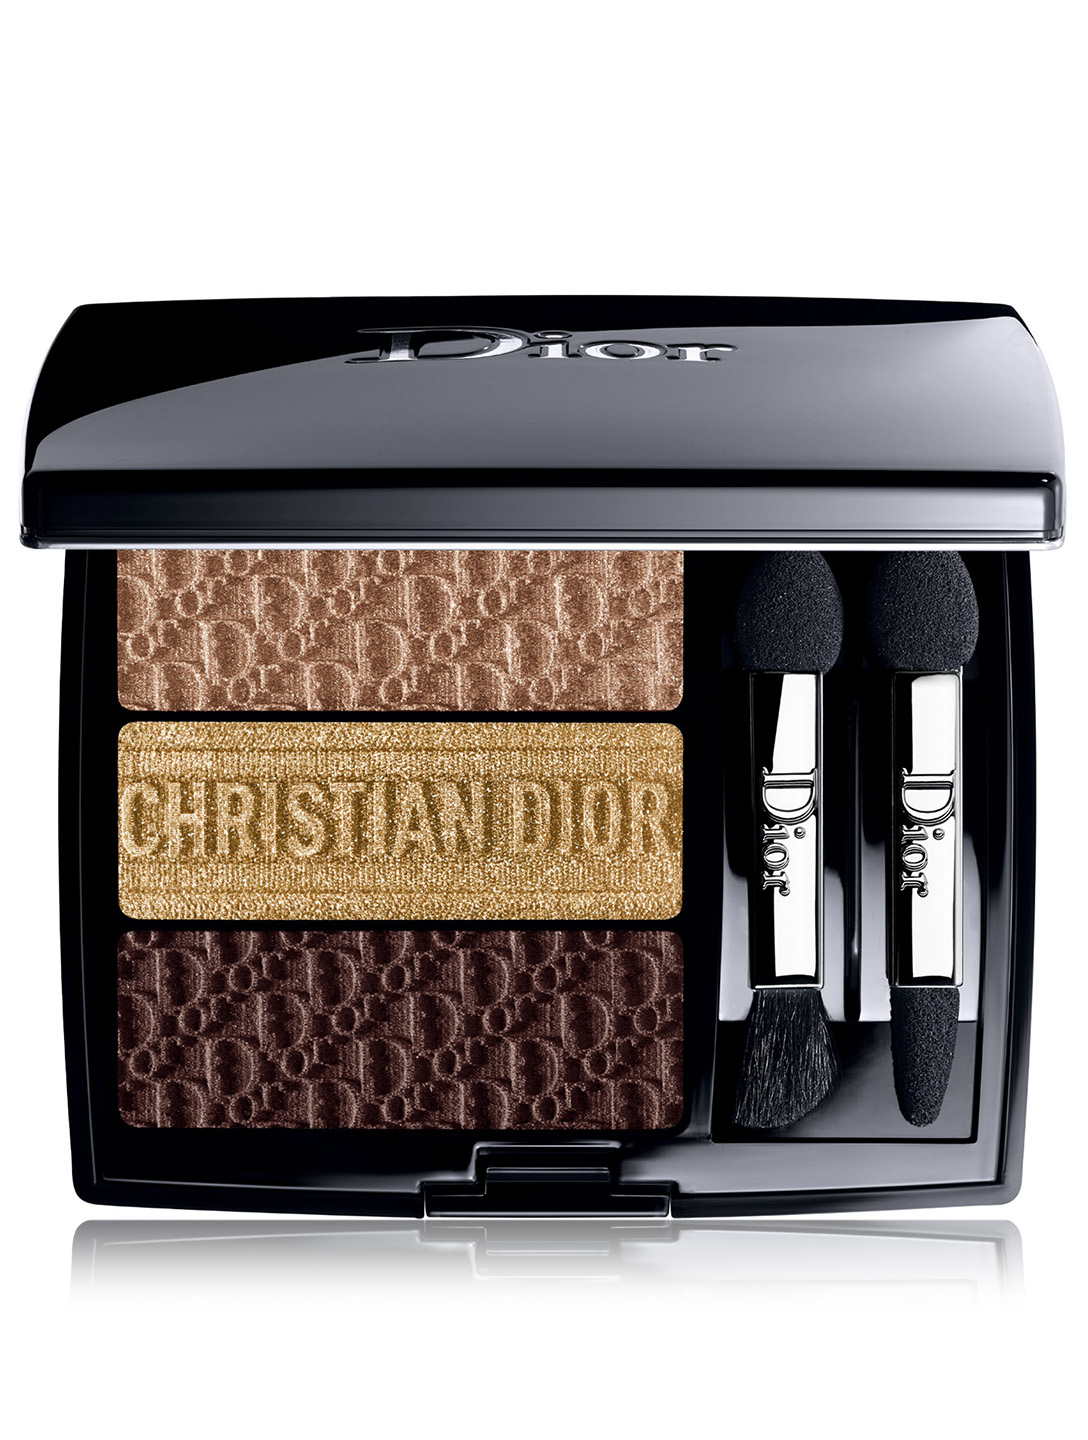 DIOR 3 Couleurs Tri(O)blique Eyeshadow Palette - Limited Edition Beauty Brown